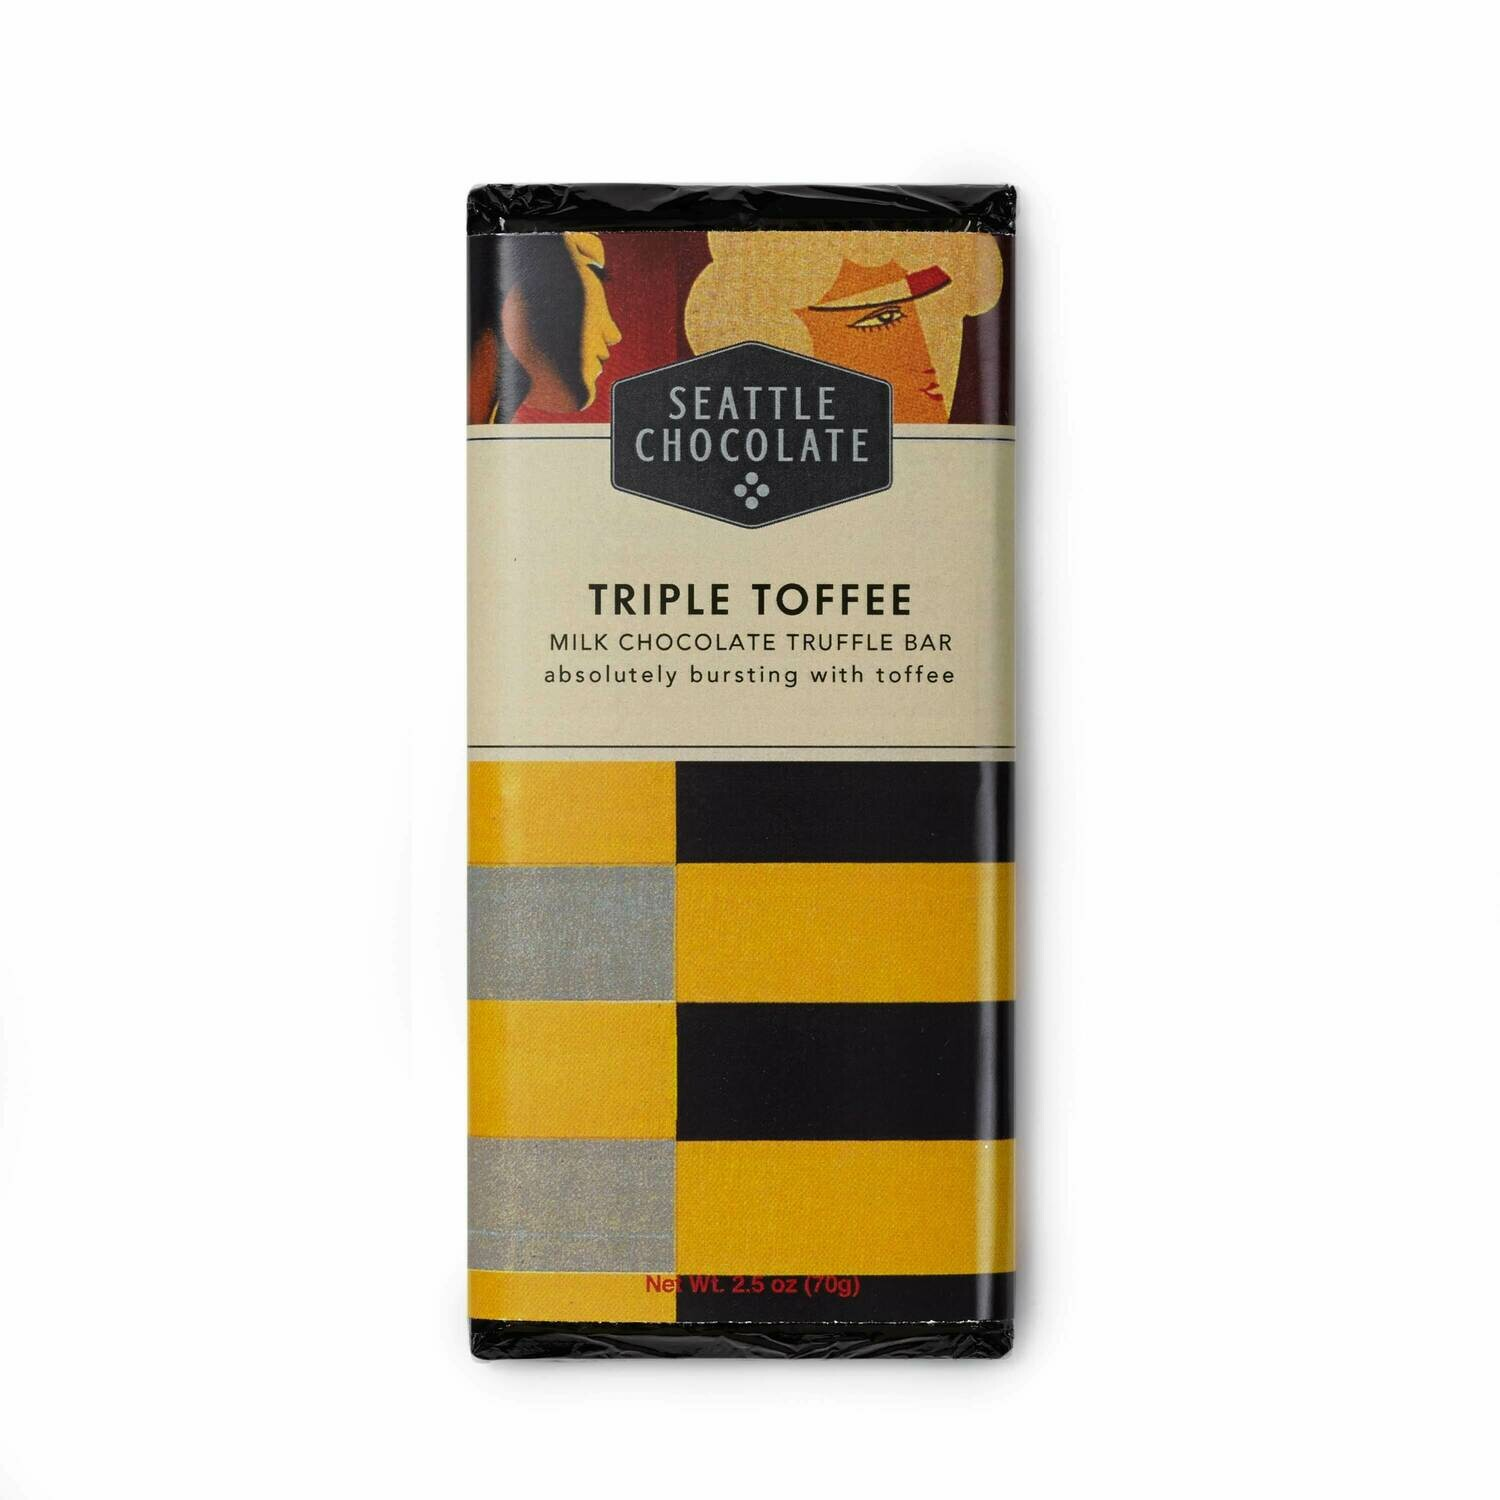 Seattle Chocolates Mk Triple Toffee Truffle Bar